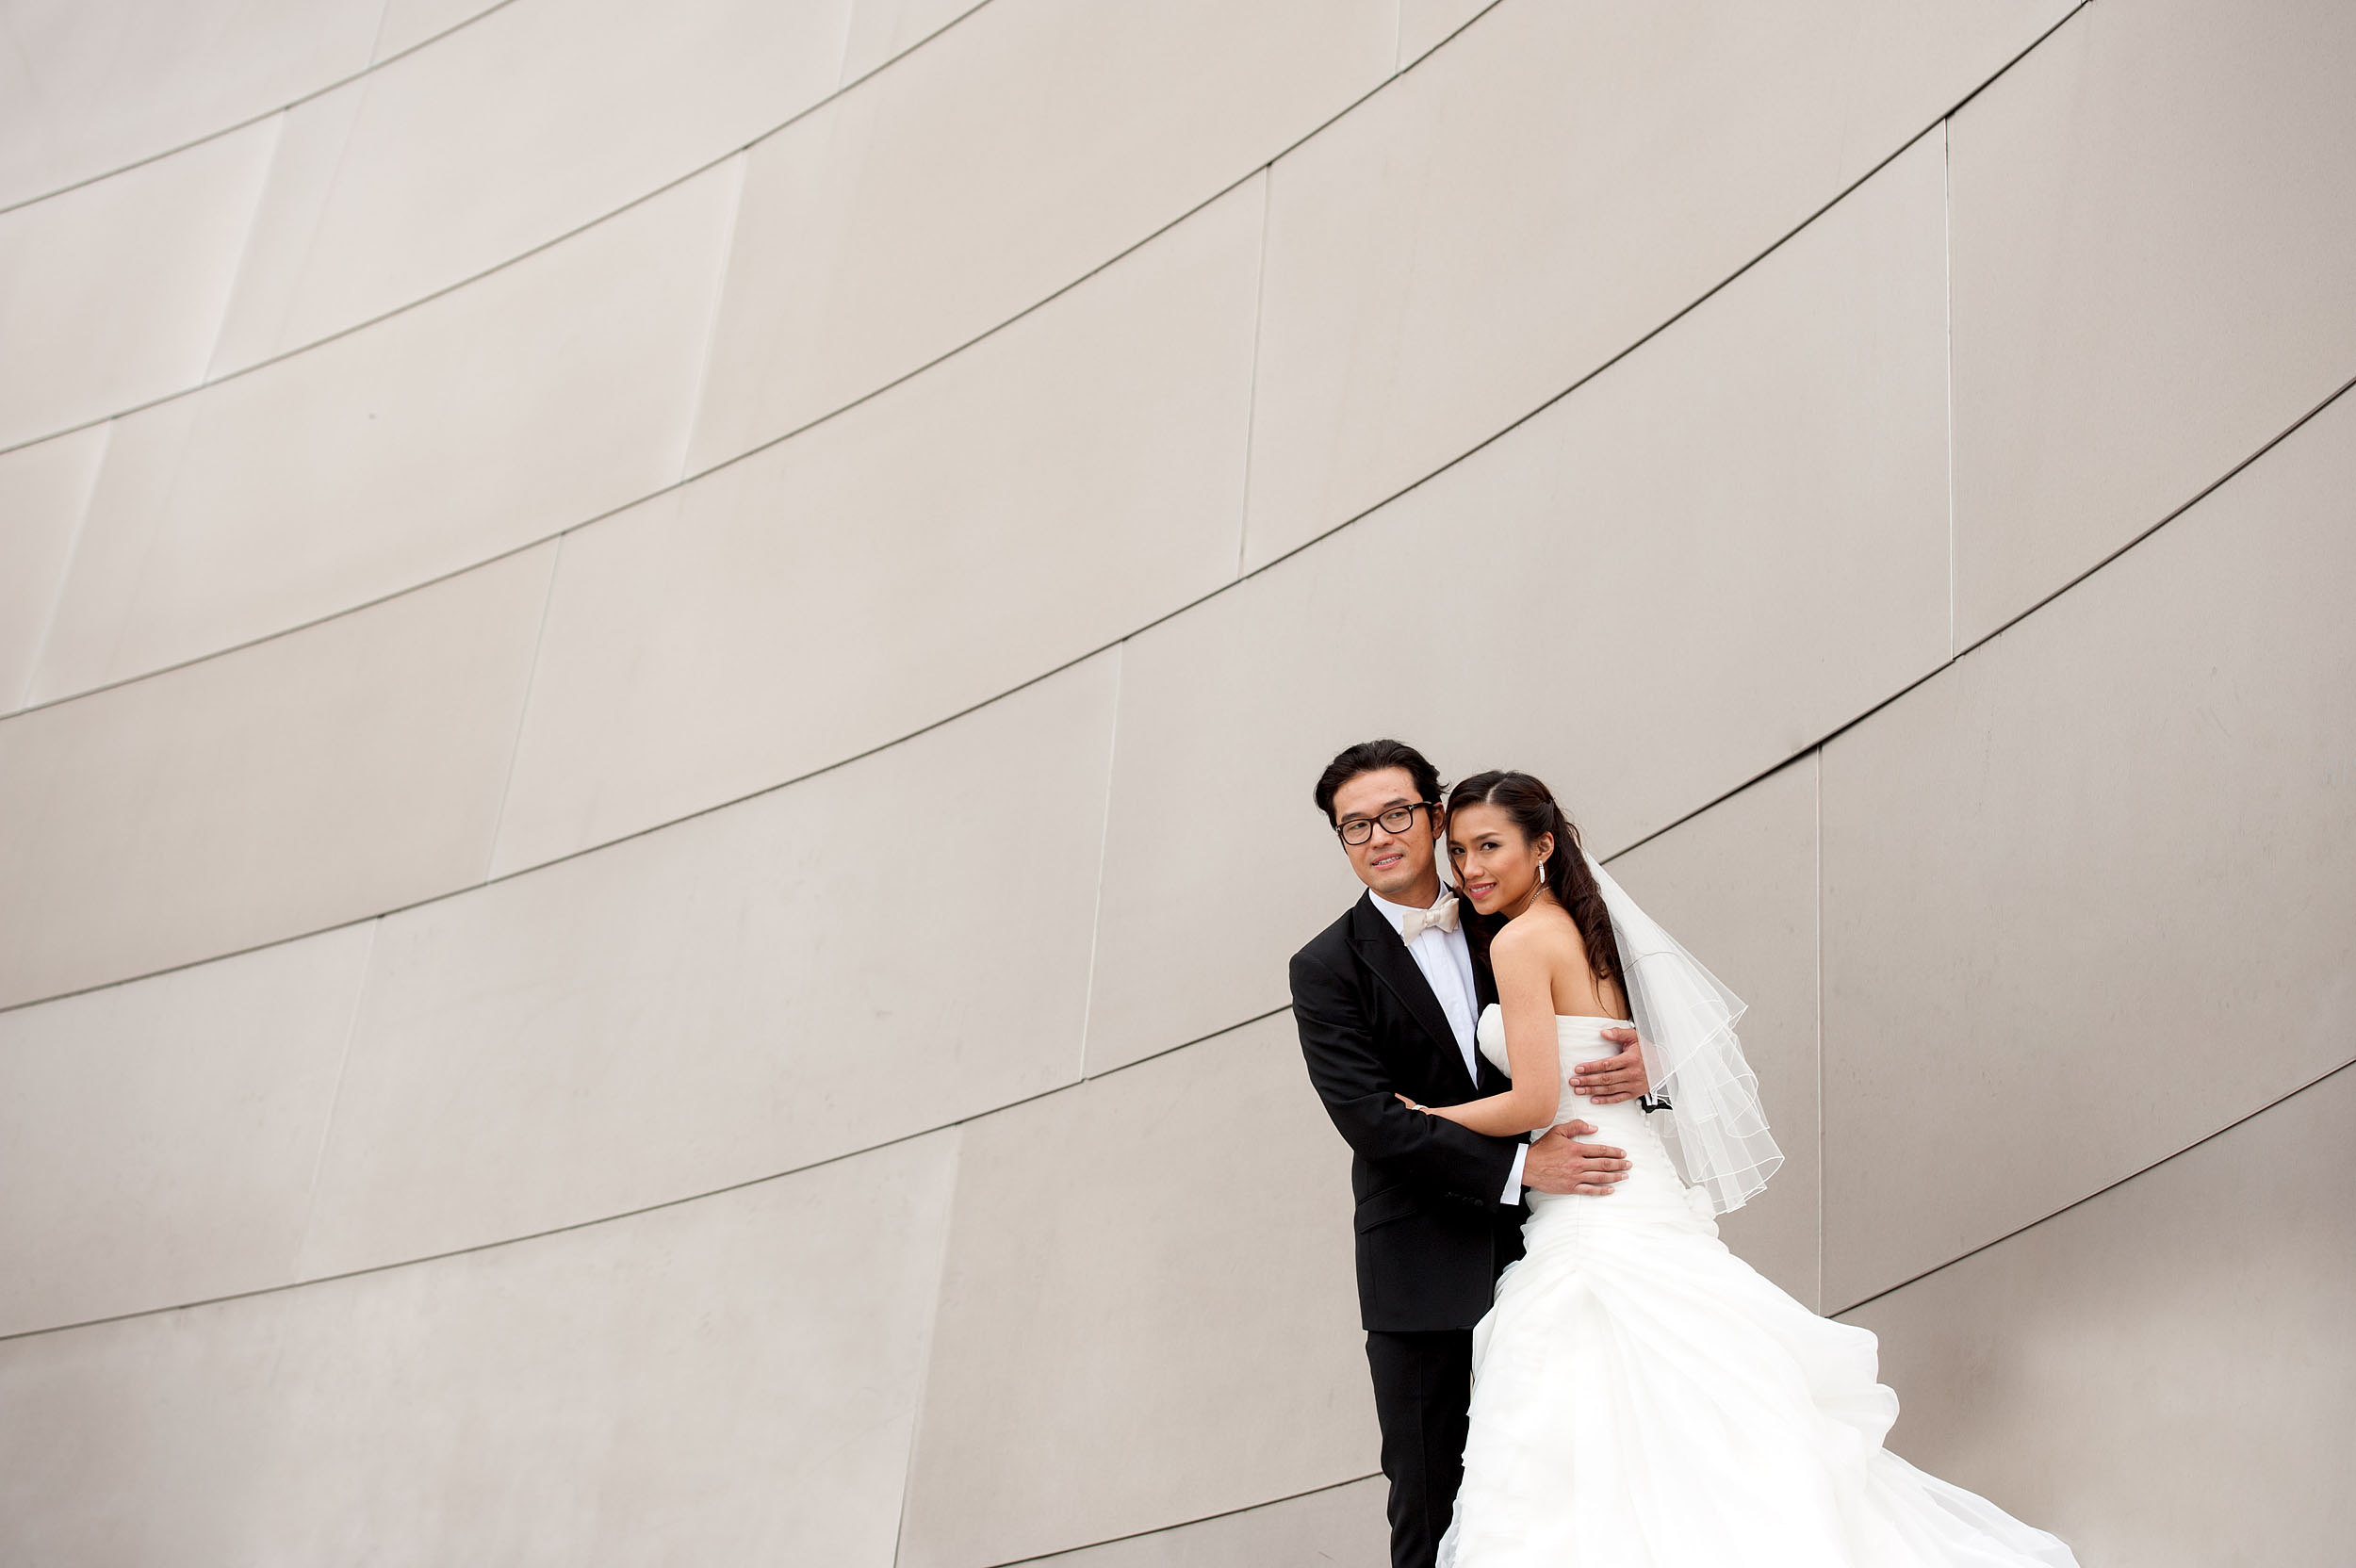 Bride and groom at the Walt Disney Concert Hall in Los Angeles.